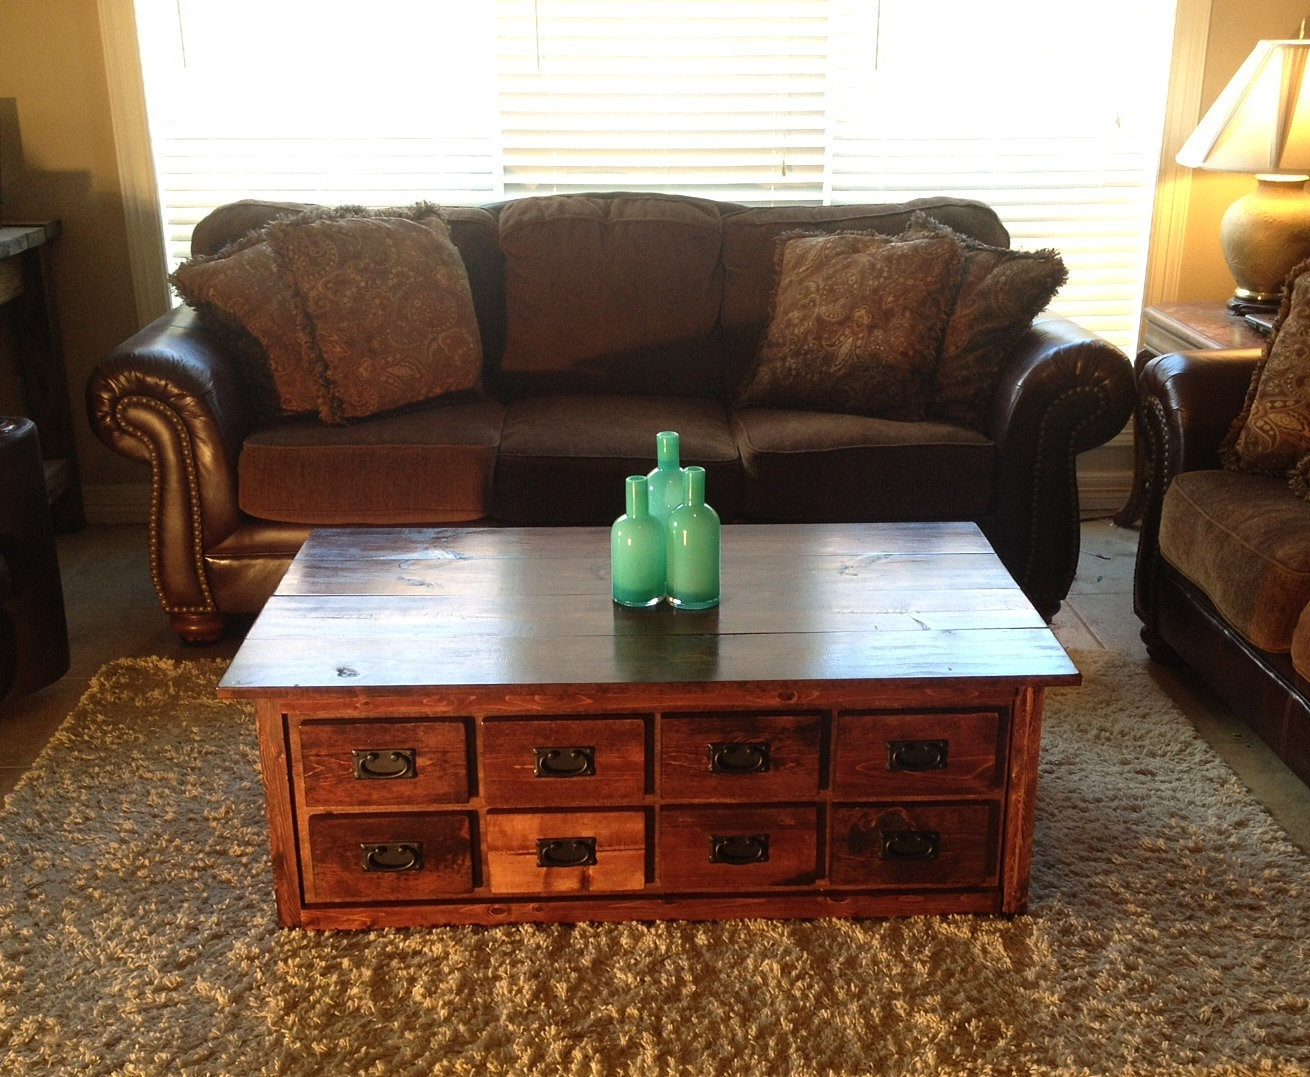 Fabulous Pottery Barn Apothecary Coffee Table 1310 x 1077 · 239 kB · jpeg